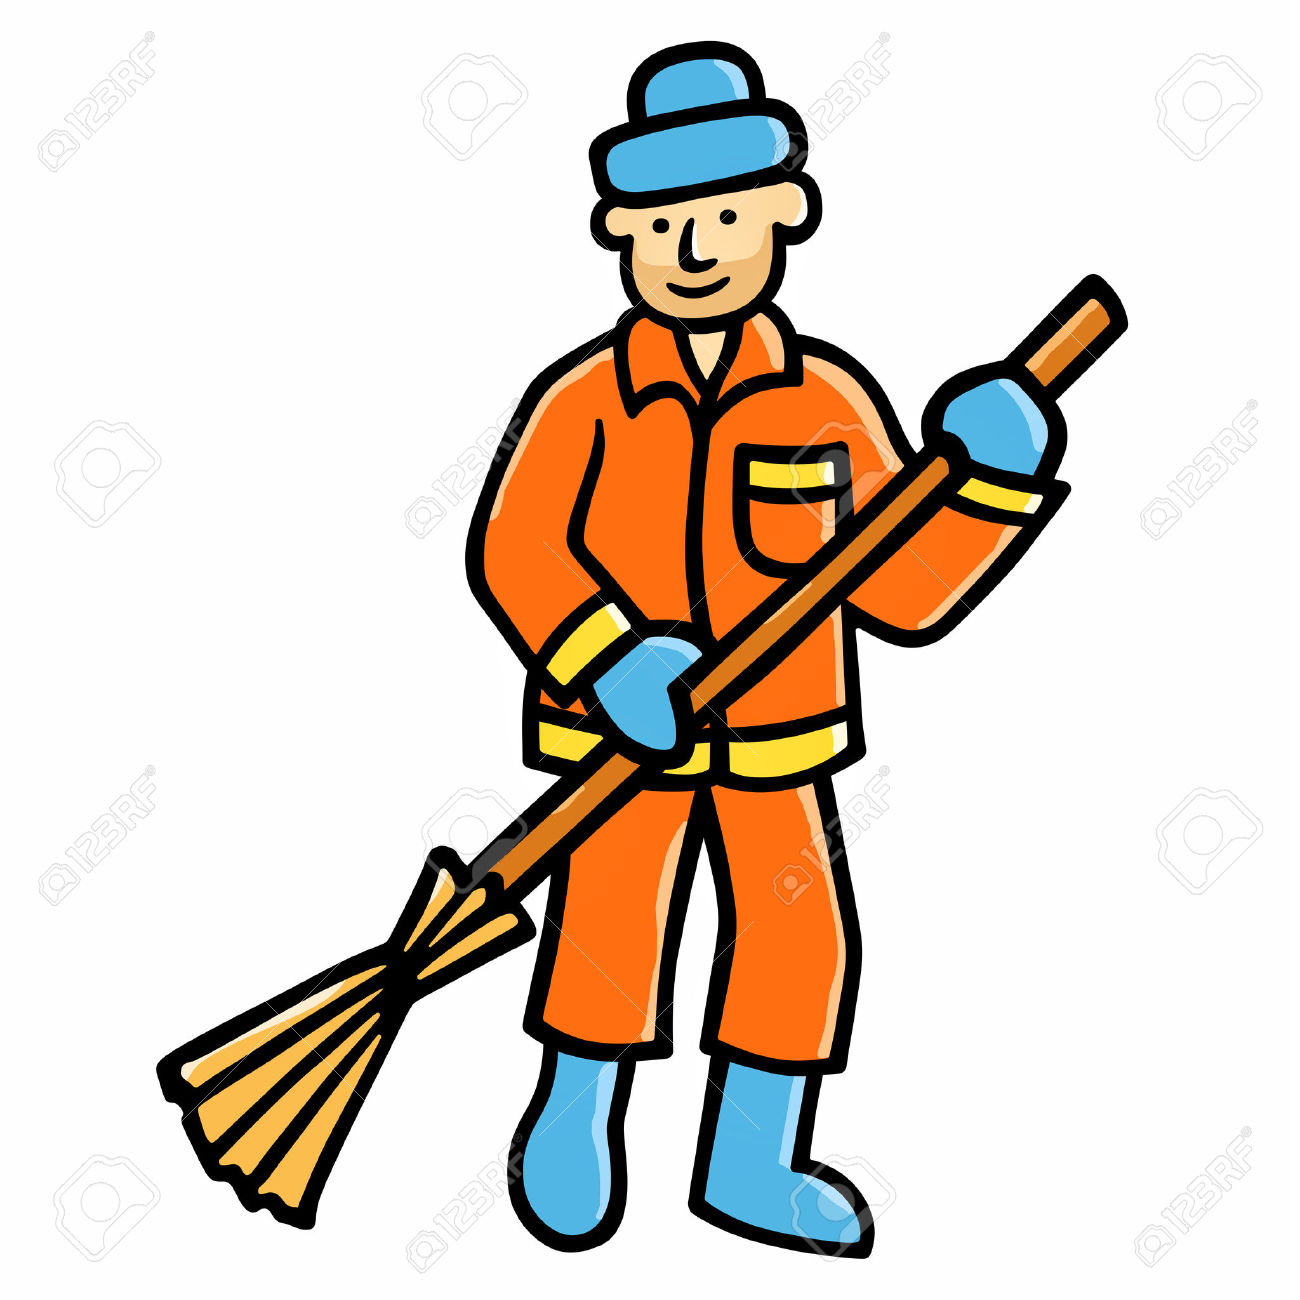 street-cleaner-sweeper